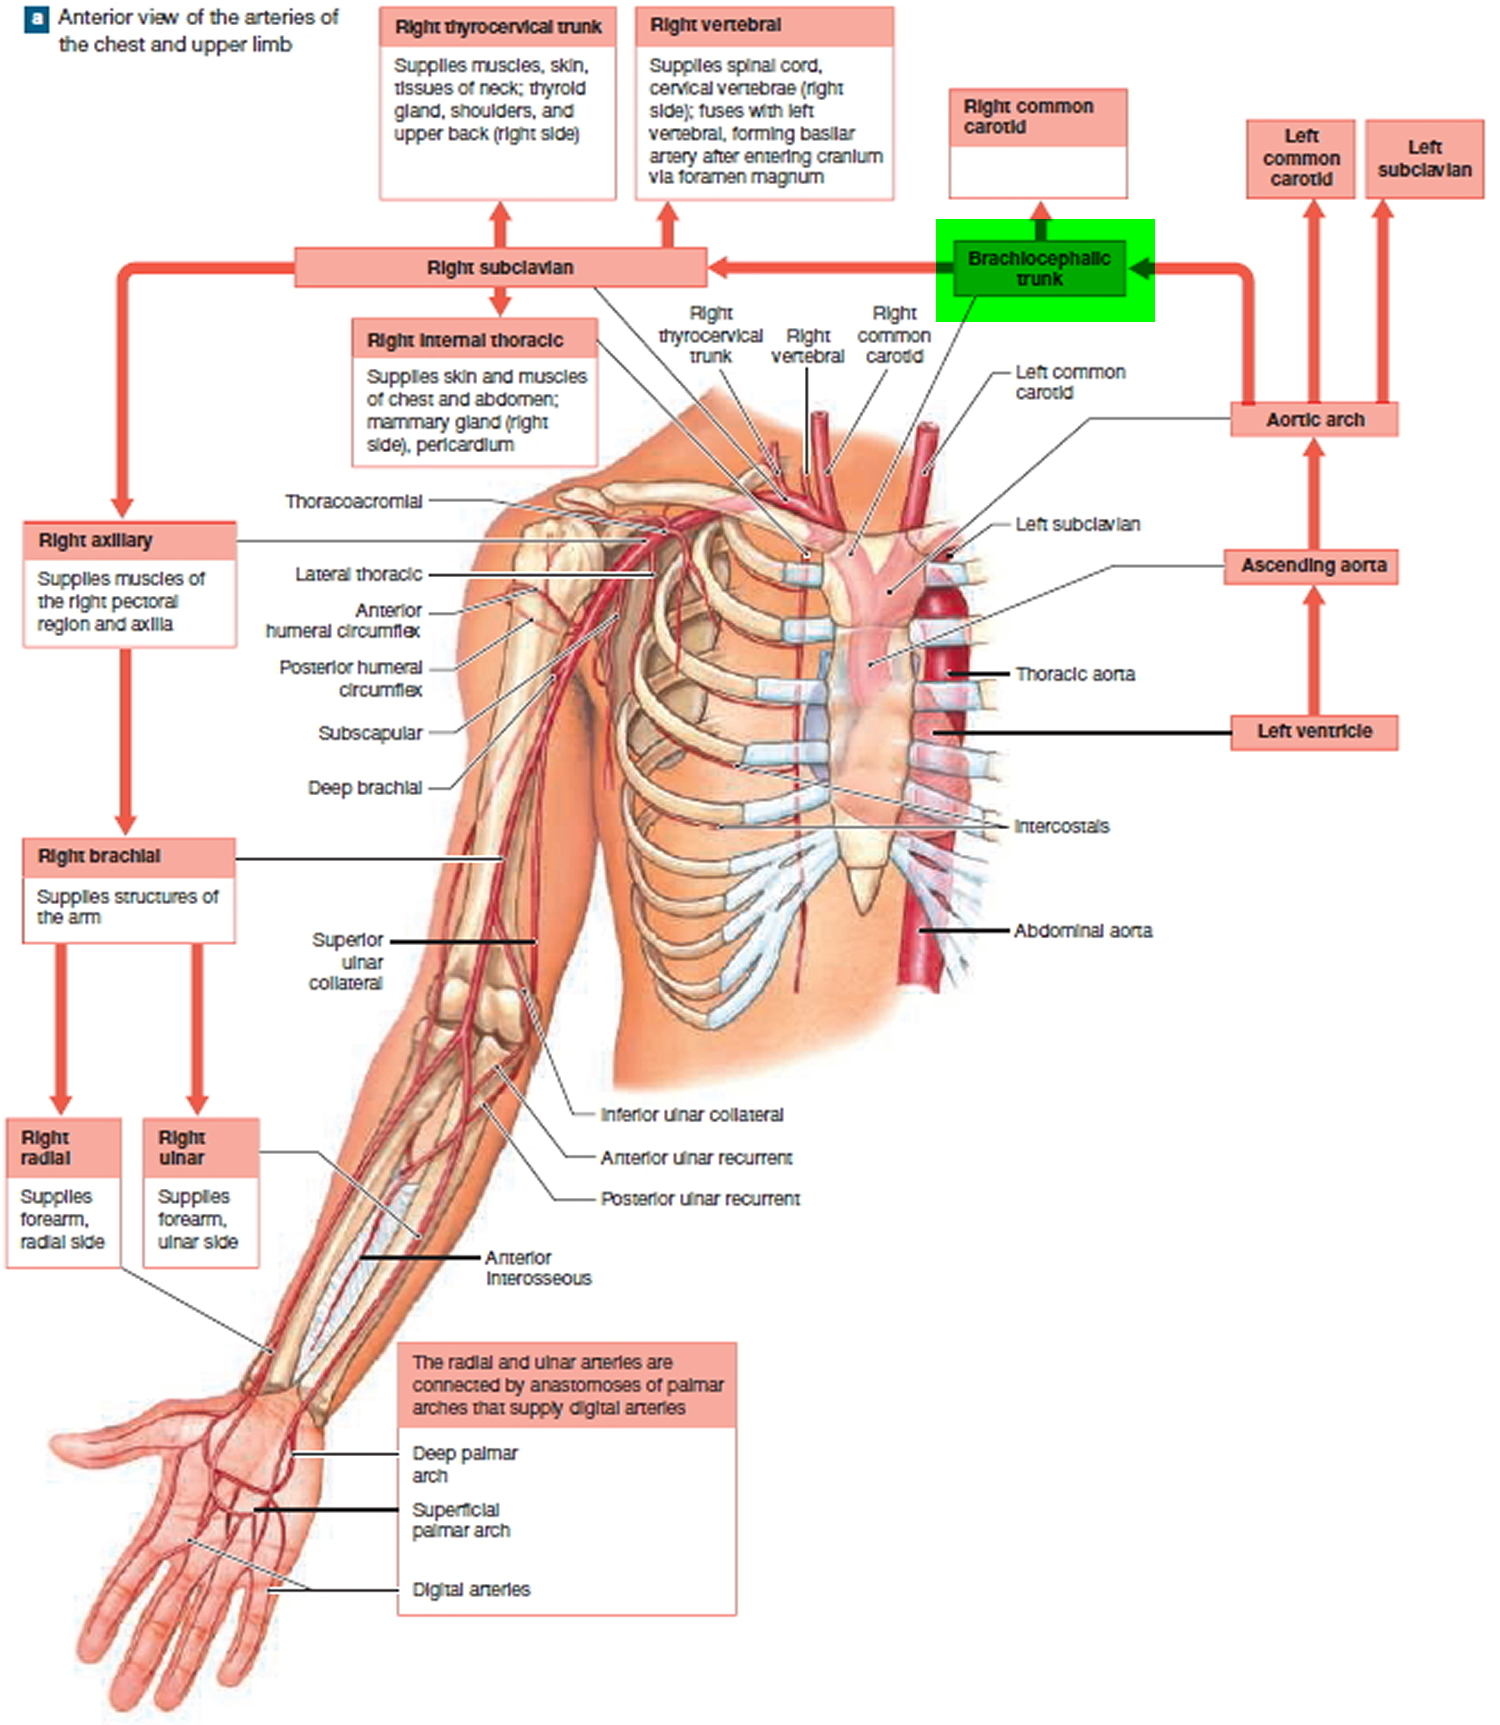 Aorta anatomy branches